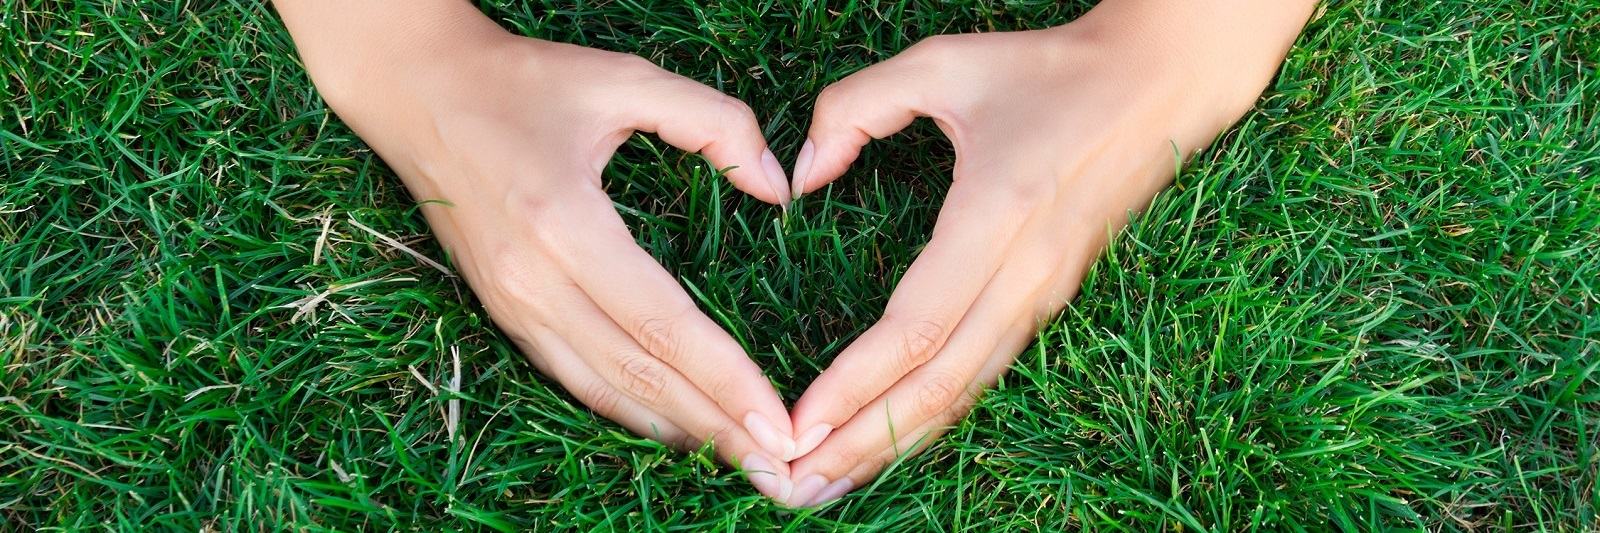 Hands in shape of a heart on green grass